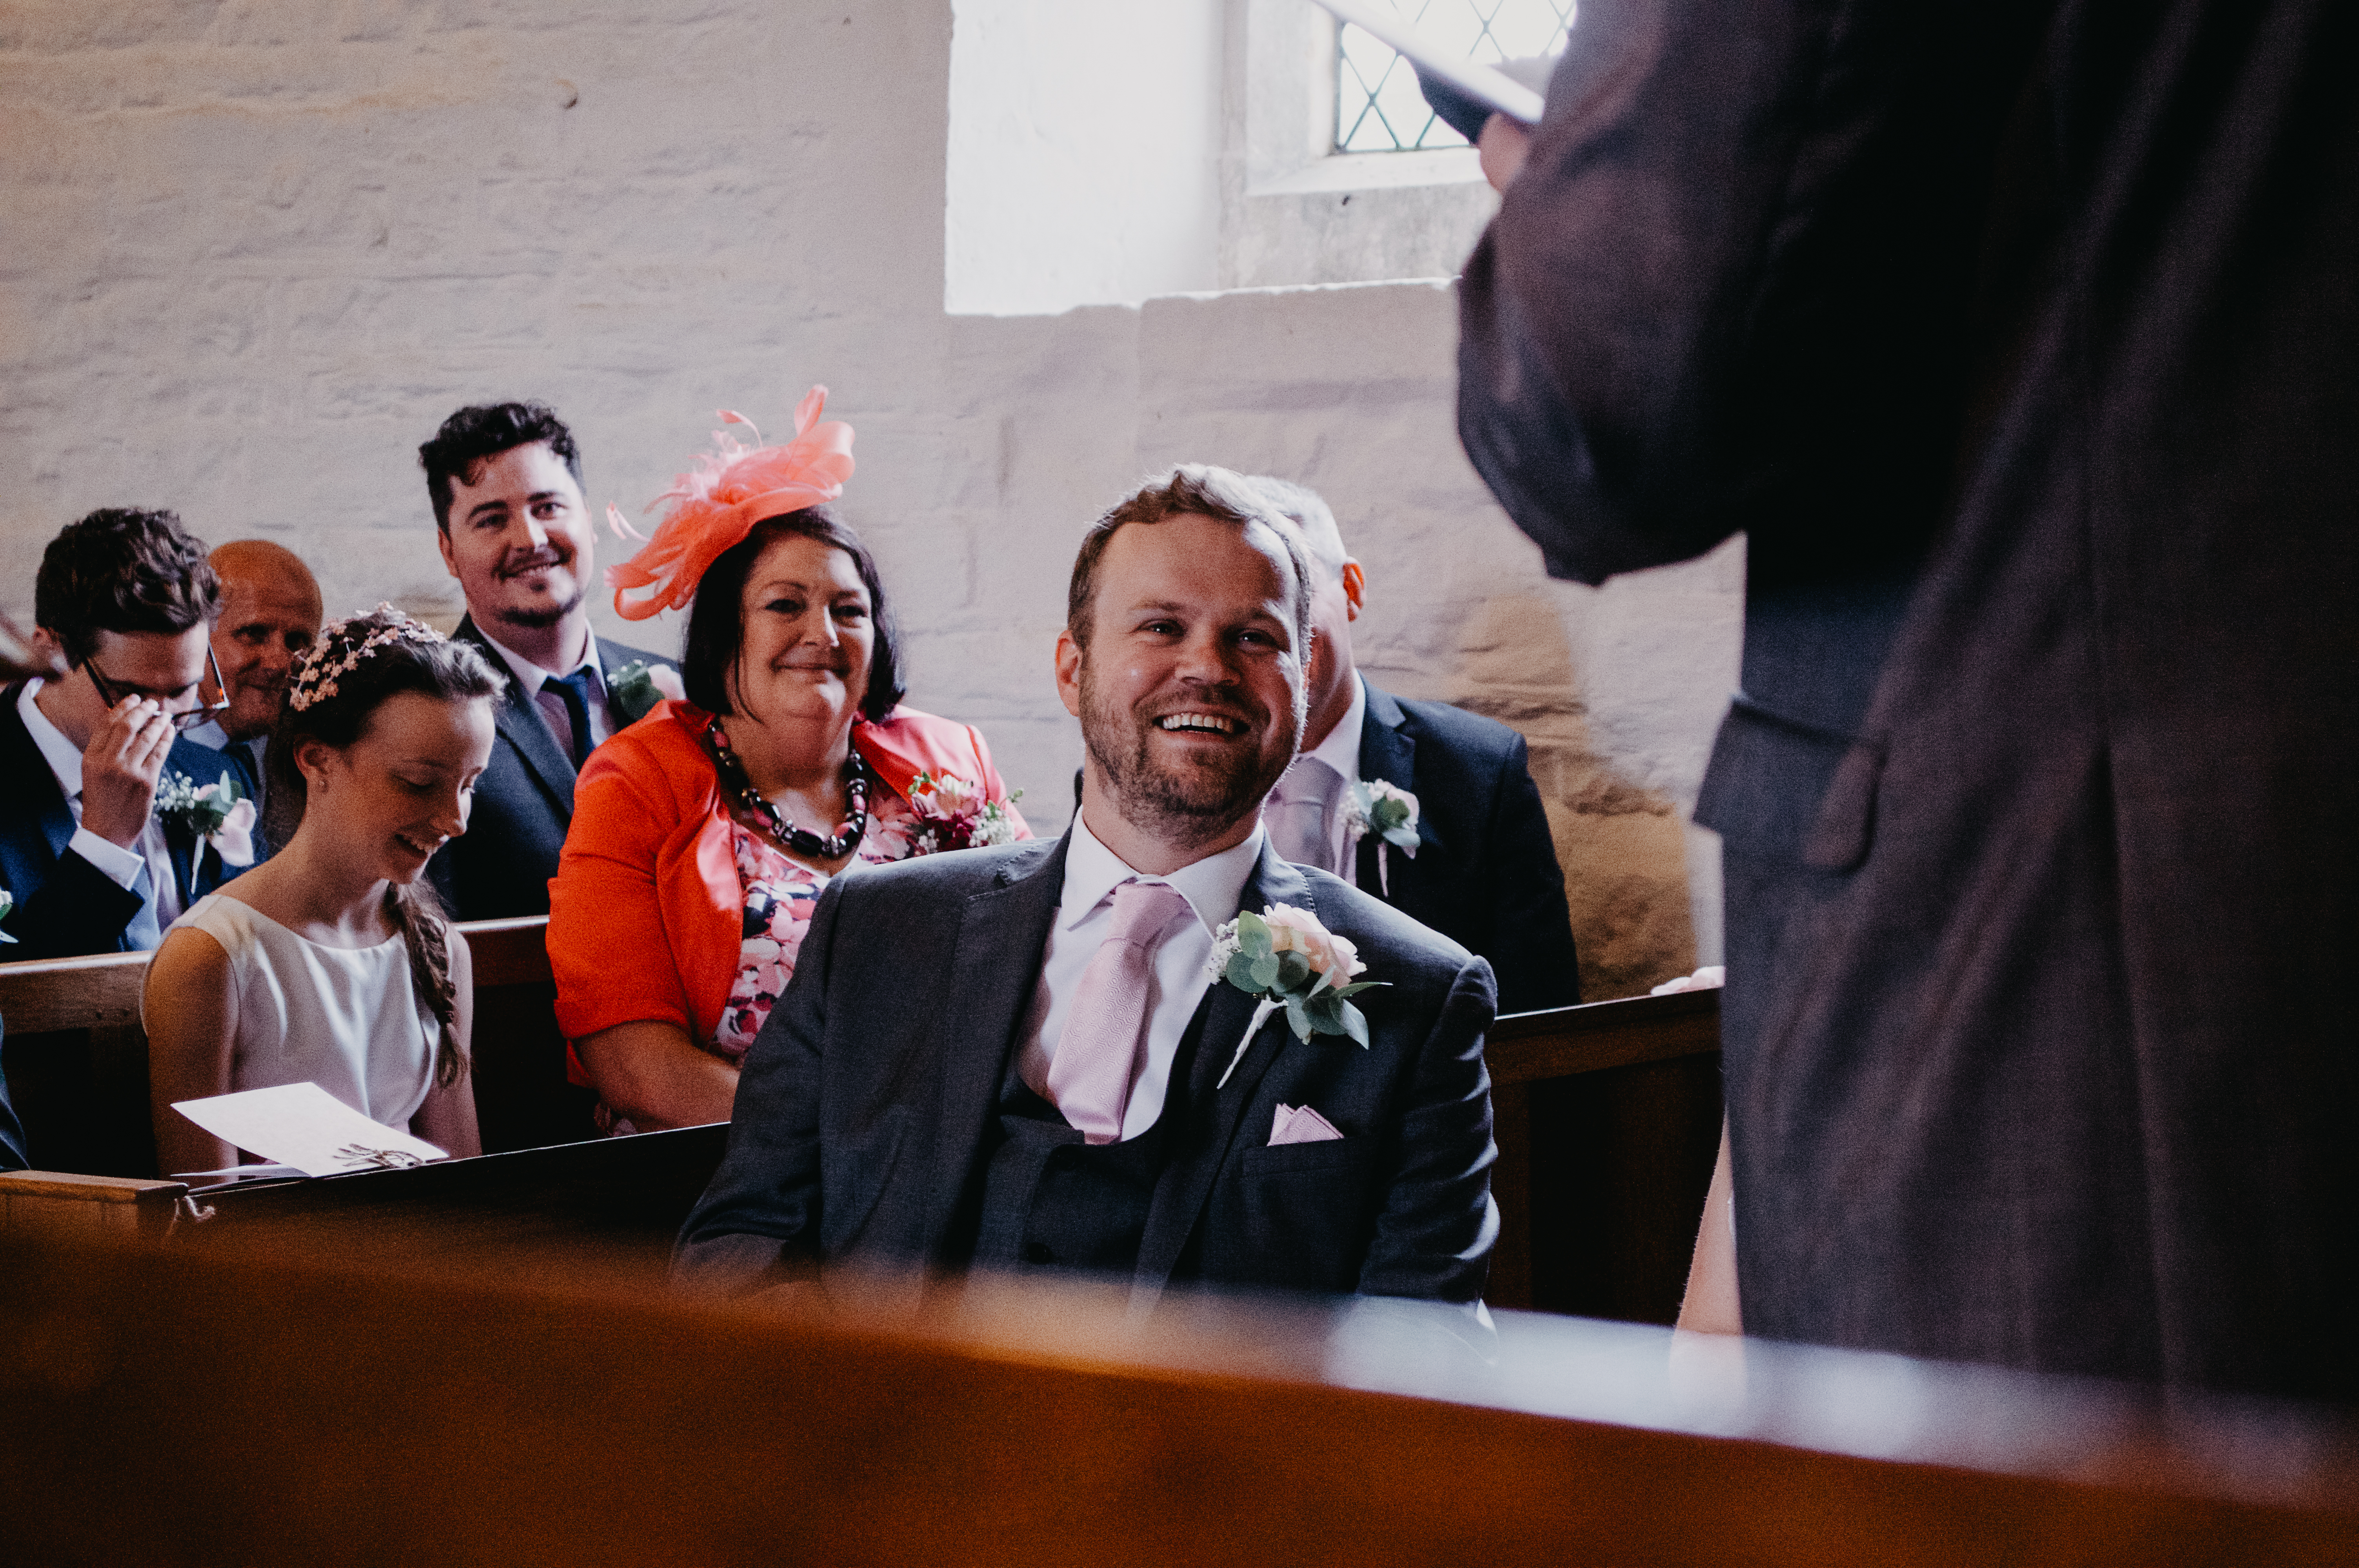 groom sitting down and laughing